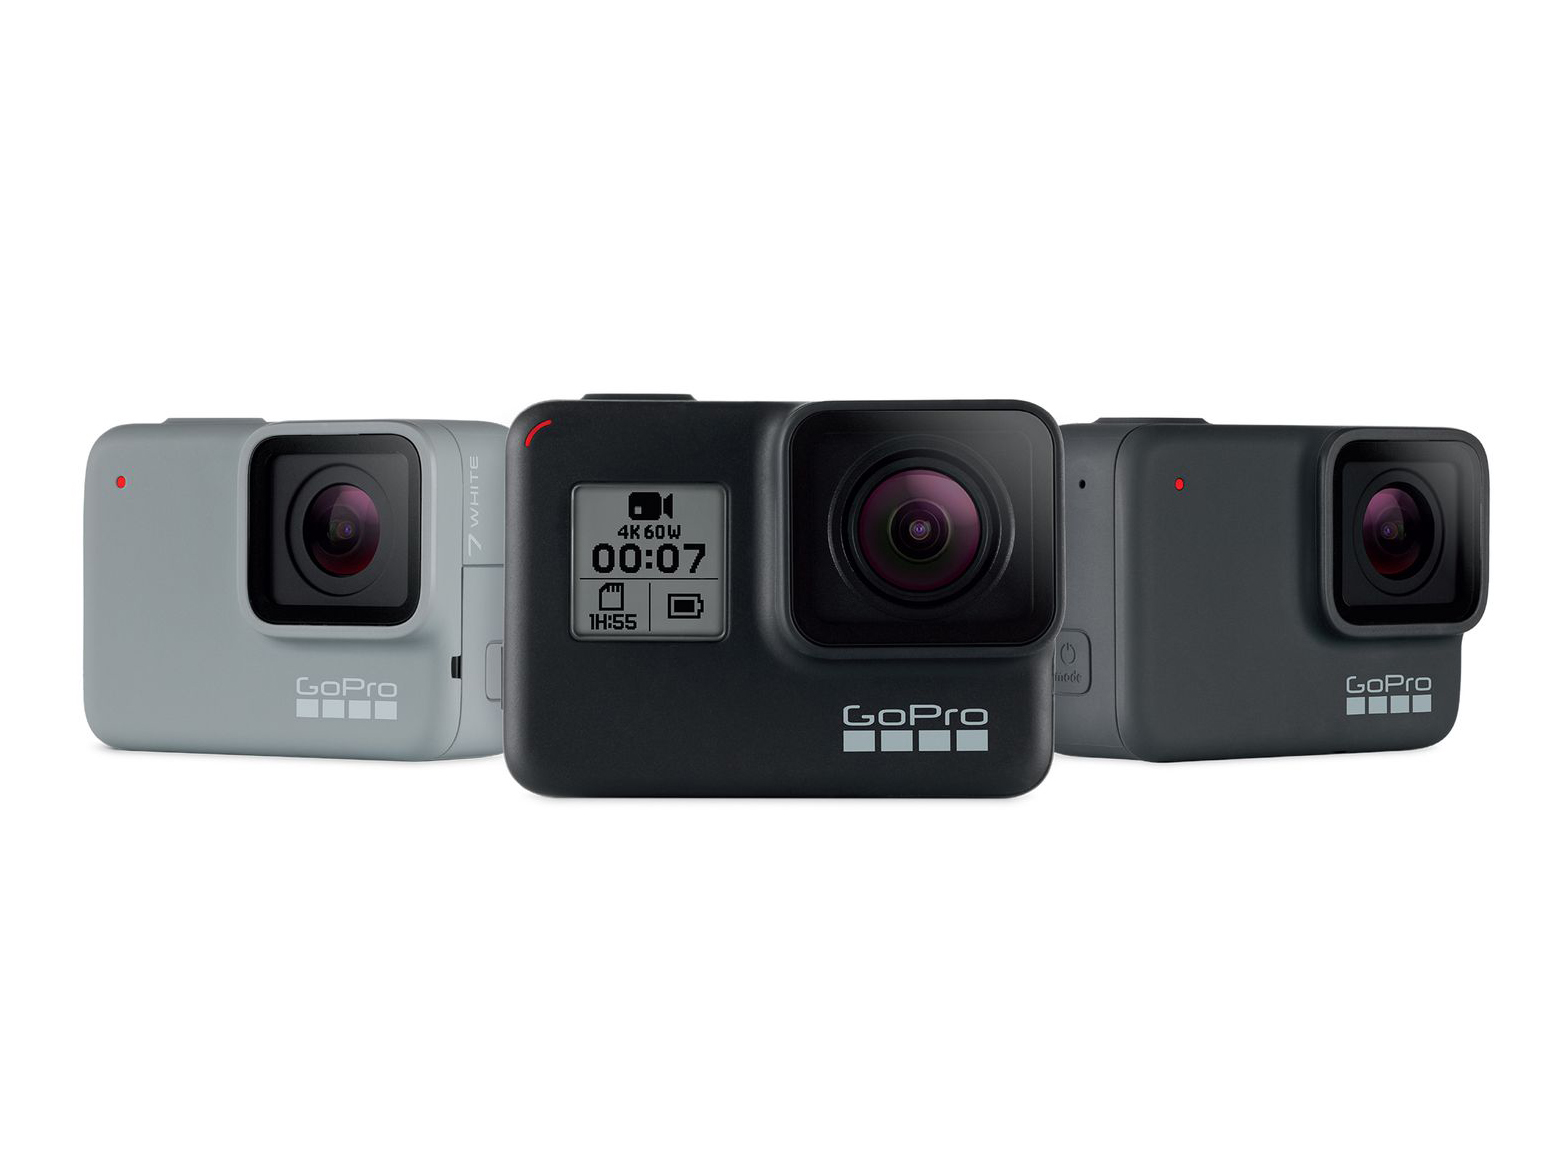 Gopro Launches New Hero7 Black Silver And White Models With Hypersmooth Stabilization Digital Photography Review